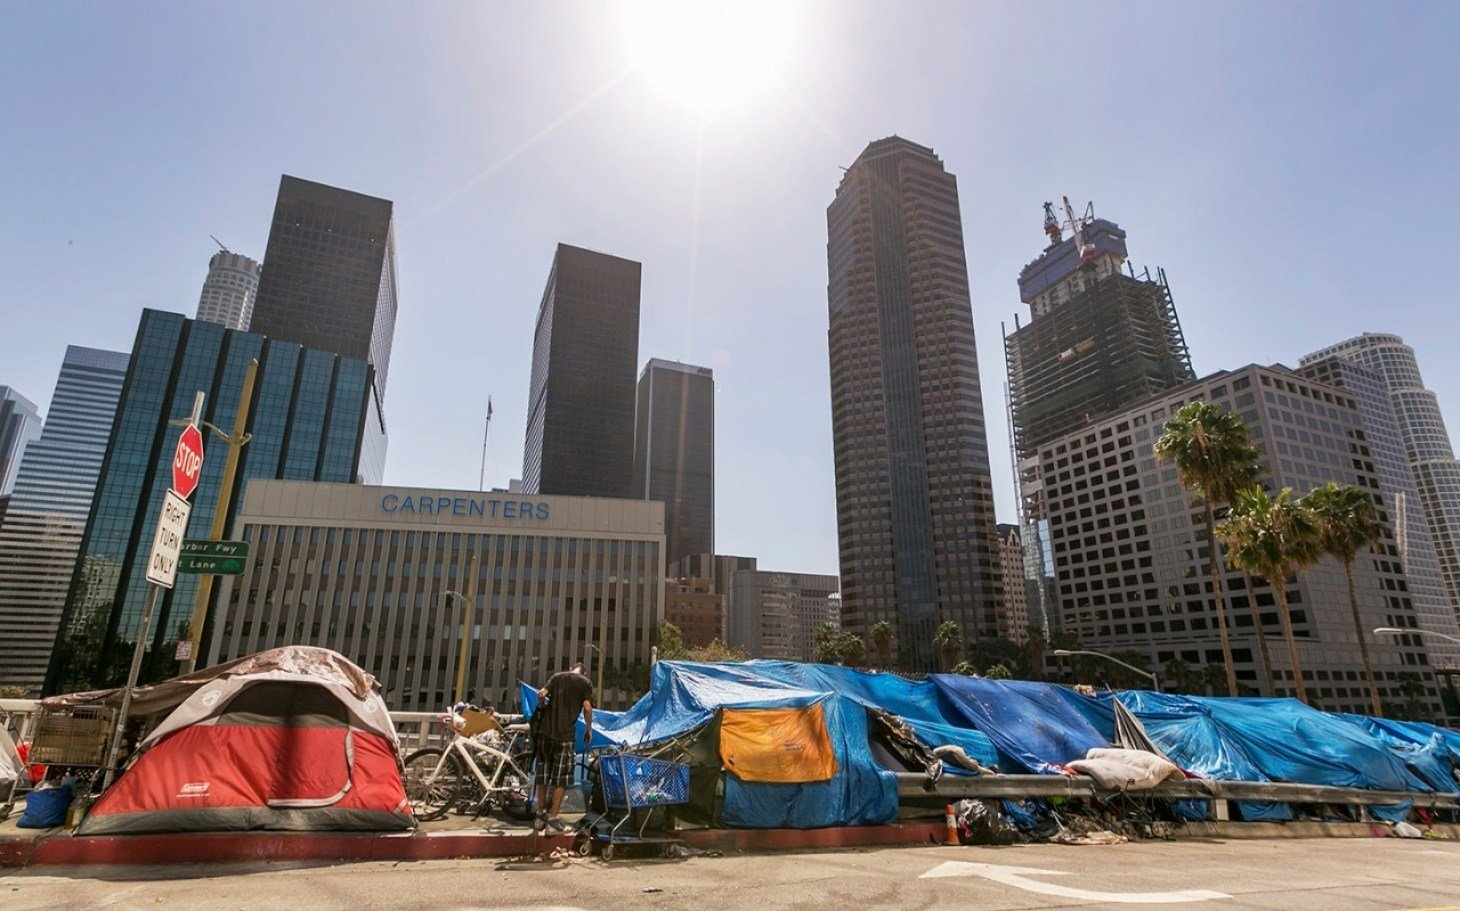 "The homeless crisis in Los Angeles has reached crisis-level proportions, with the number of men and women living on the street surpassing the supply of new housing, according to the L.A. Times. A report from L.A. county's homelessness agency shows that city officials have been underestimating the needed amount of new housing, ensuring that the city's ""$73-million annual …"